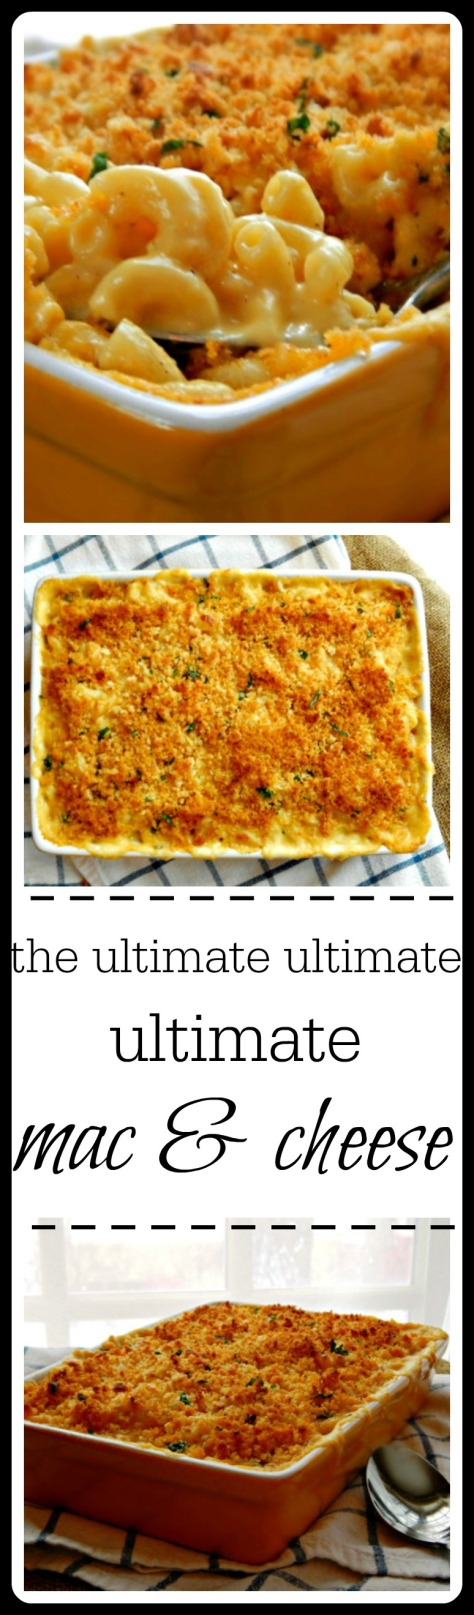 This really is the BEST Mac & Cheese I've ever made - no make that the BEST I've EVER eaten!! From the perfect texture of the macaroni, the creamy cheese and that killer bread crumb topping - it's all good!